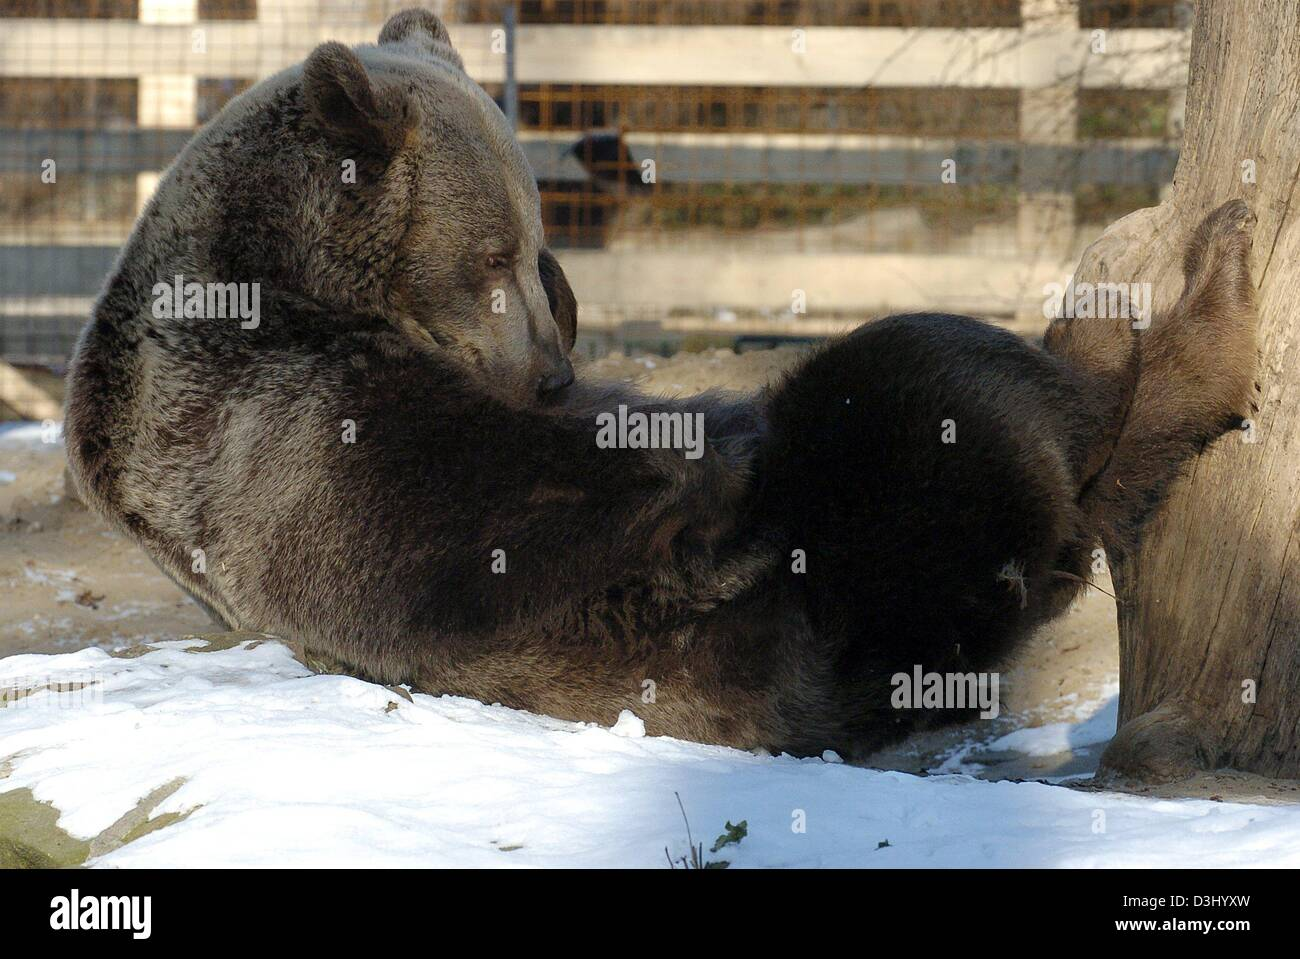 (dpa) - Brown bear lady (ursus arctos) Siddy enjoys the wintery midday sun in the zoo in Berlin, 23 January 2004. - Stock Image